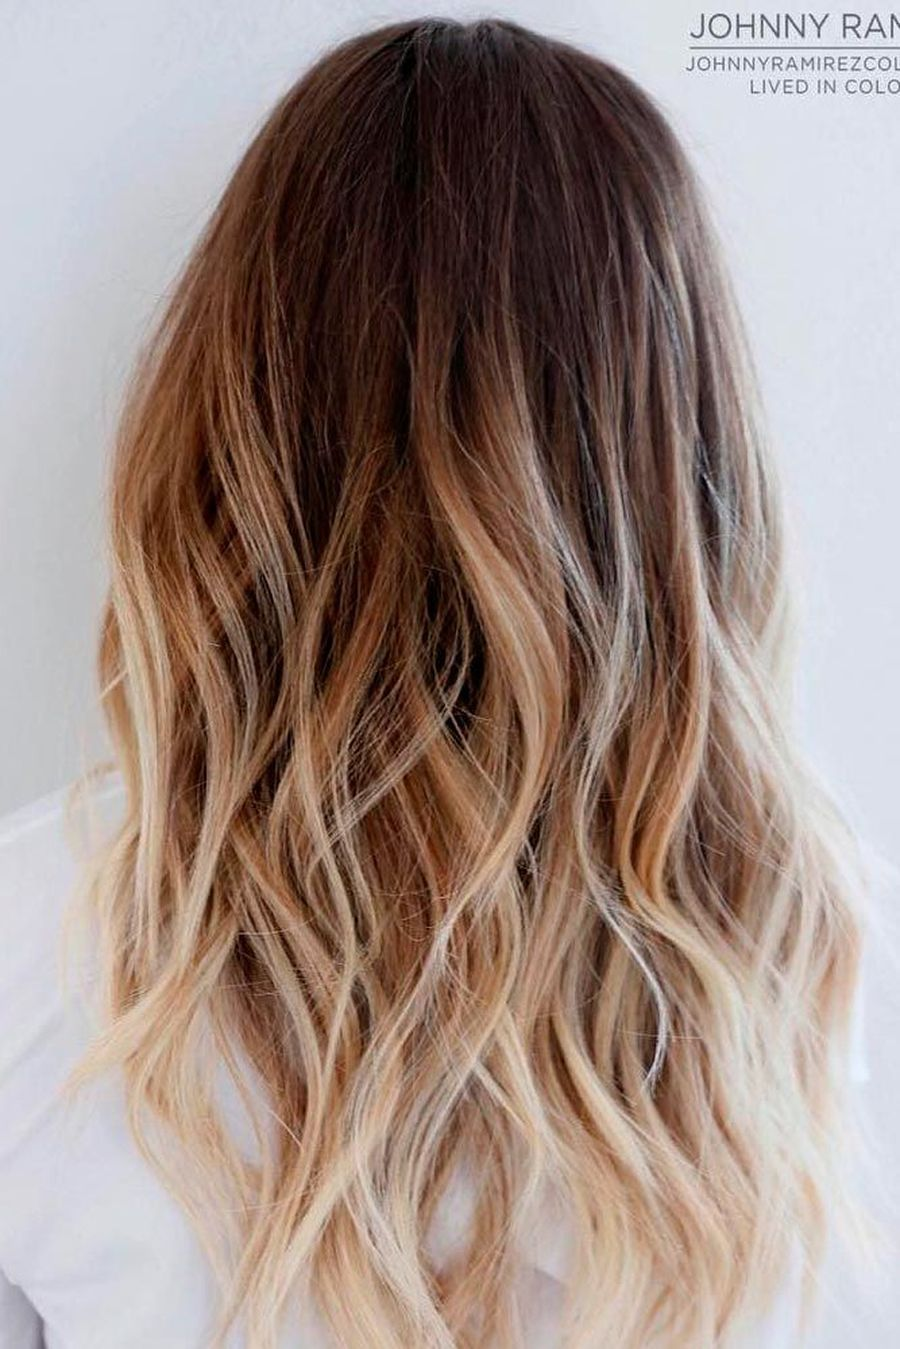 Inspiring haircolor style for winter and fall 59